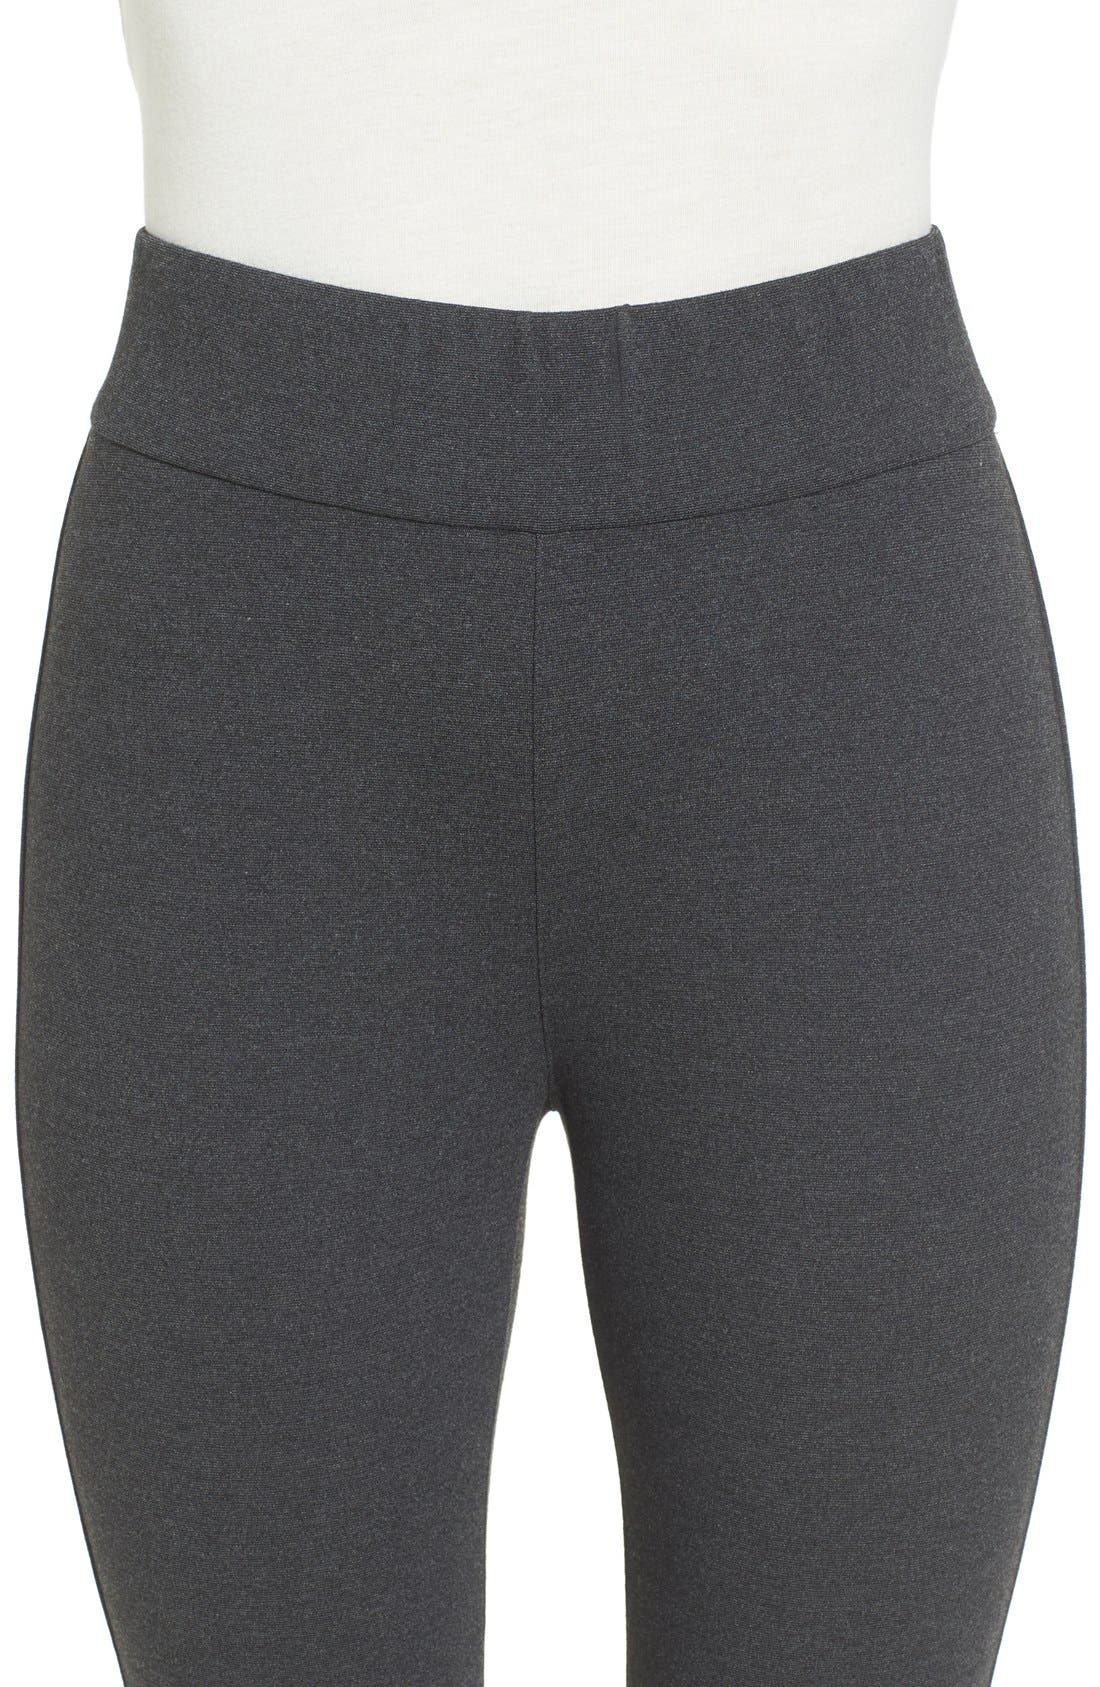 Alternate Image 4  - Eileen Fisher Ponte Knit Leggings (Regular & Petite)